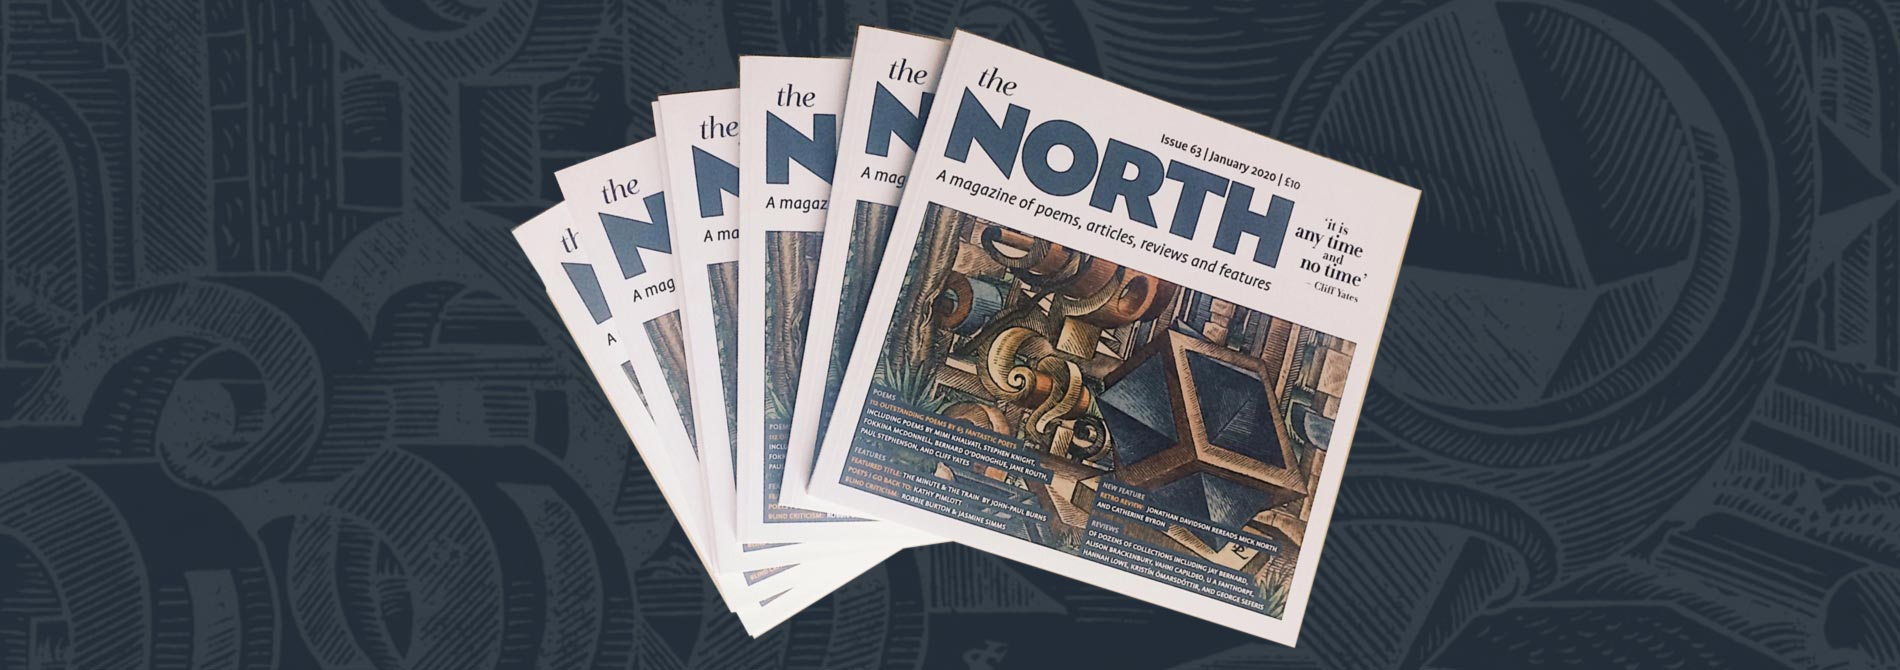 The North Magazine Issue 63